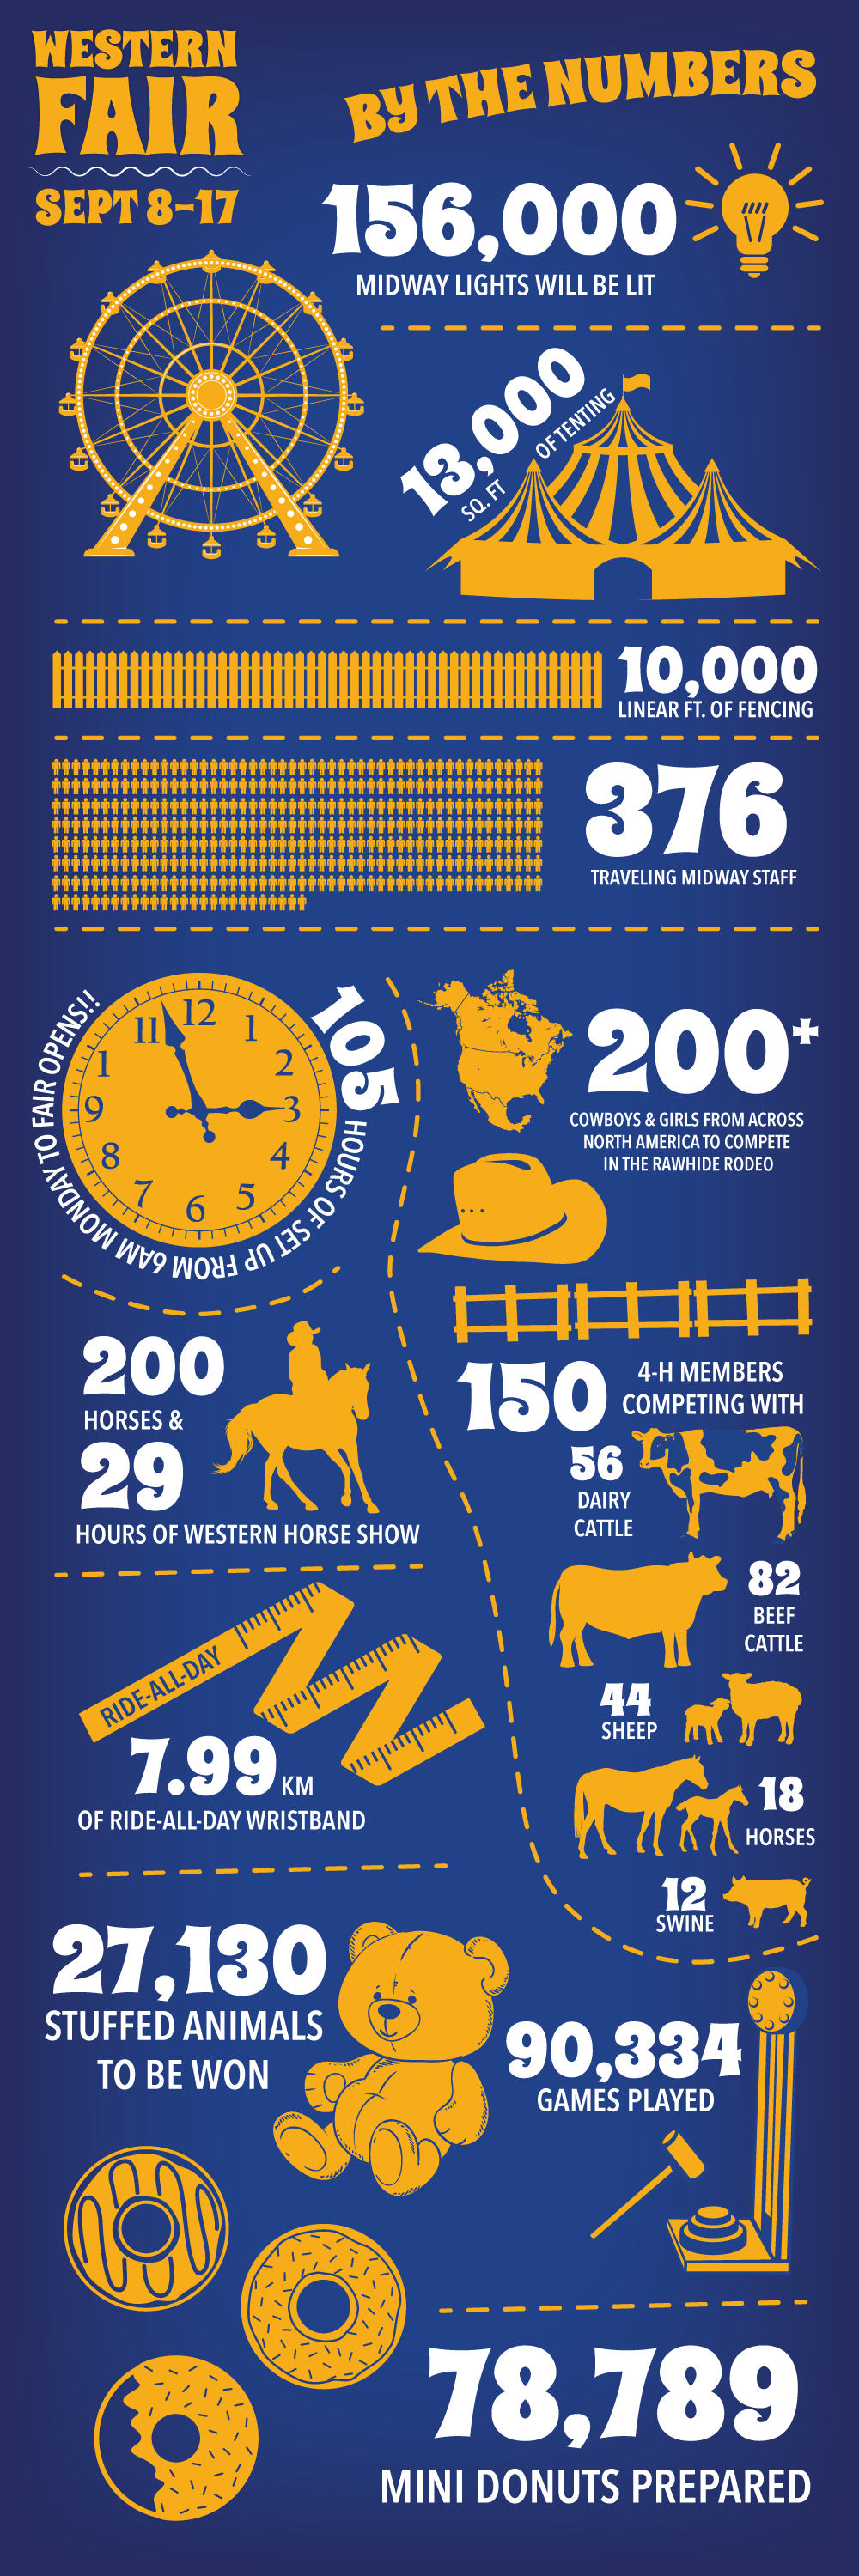 Western Fair 2017 Infographic